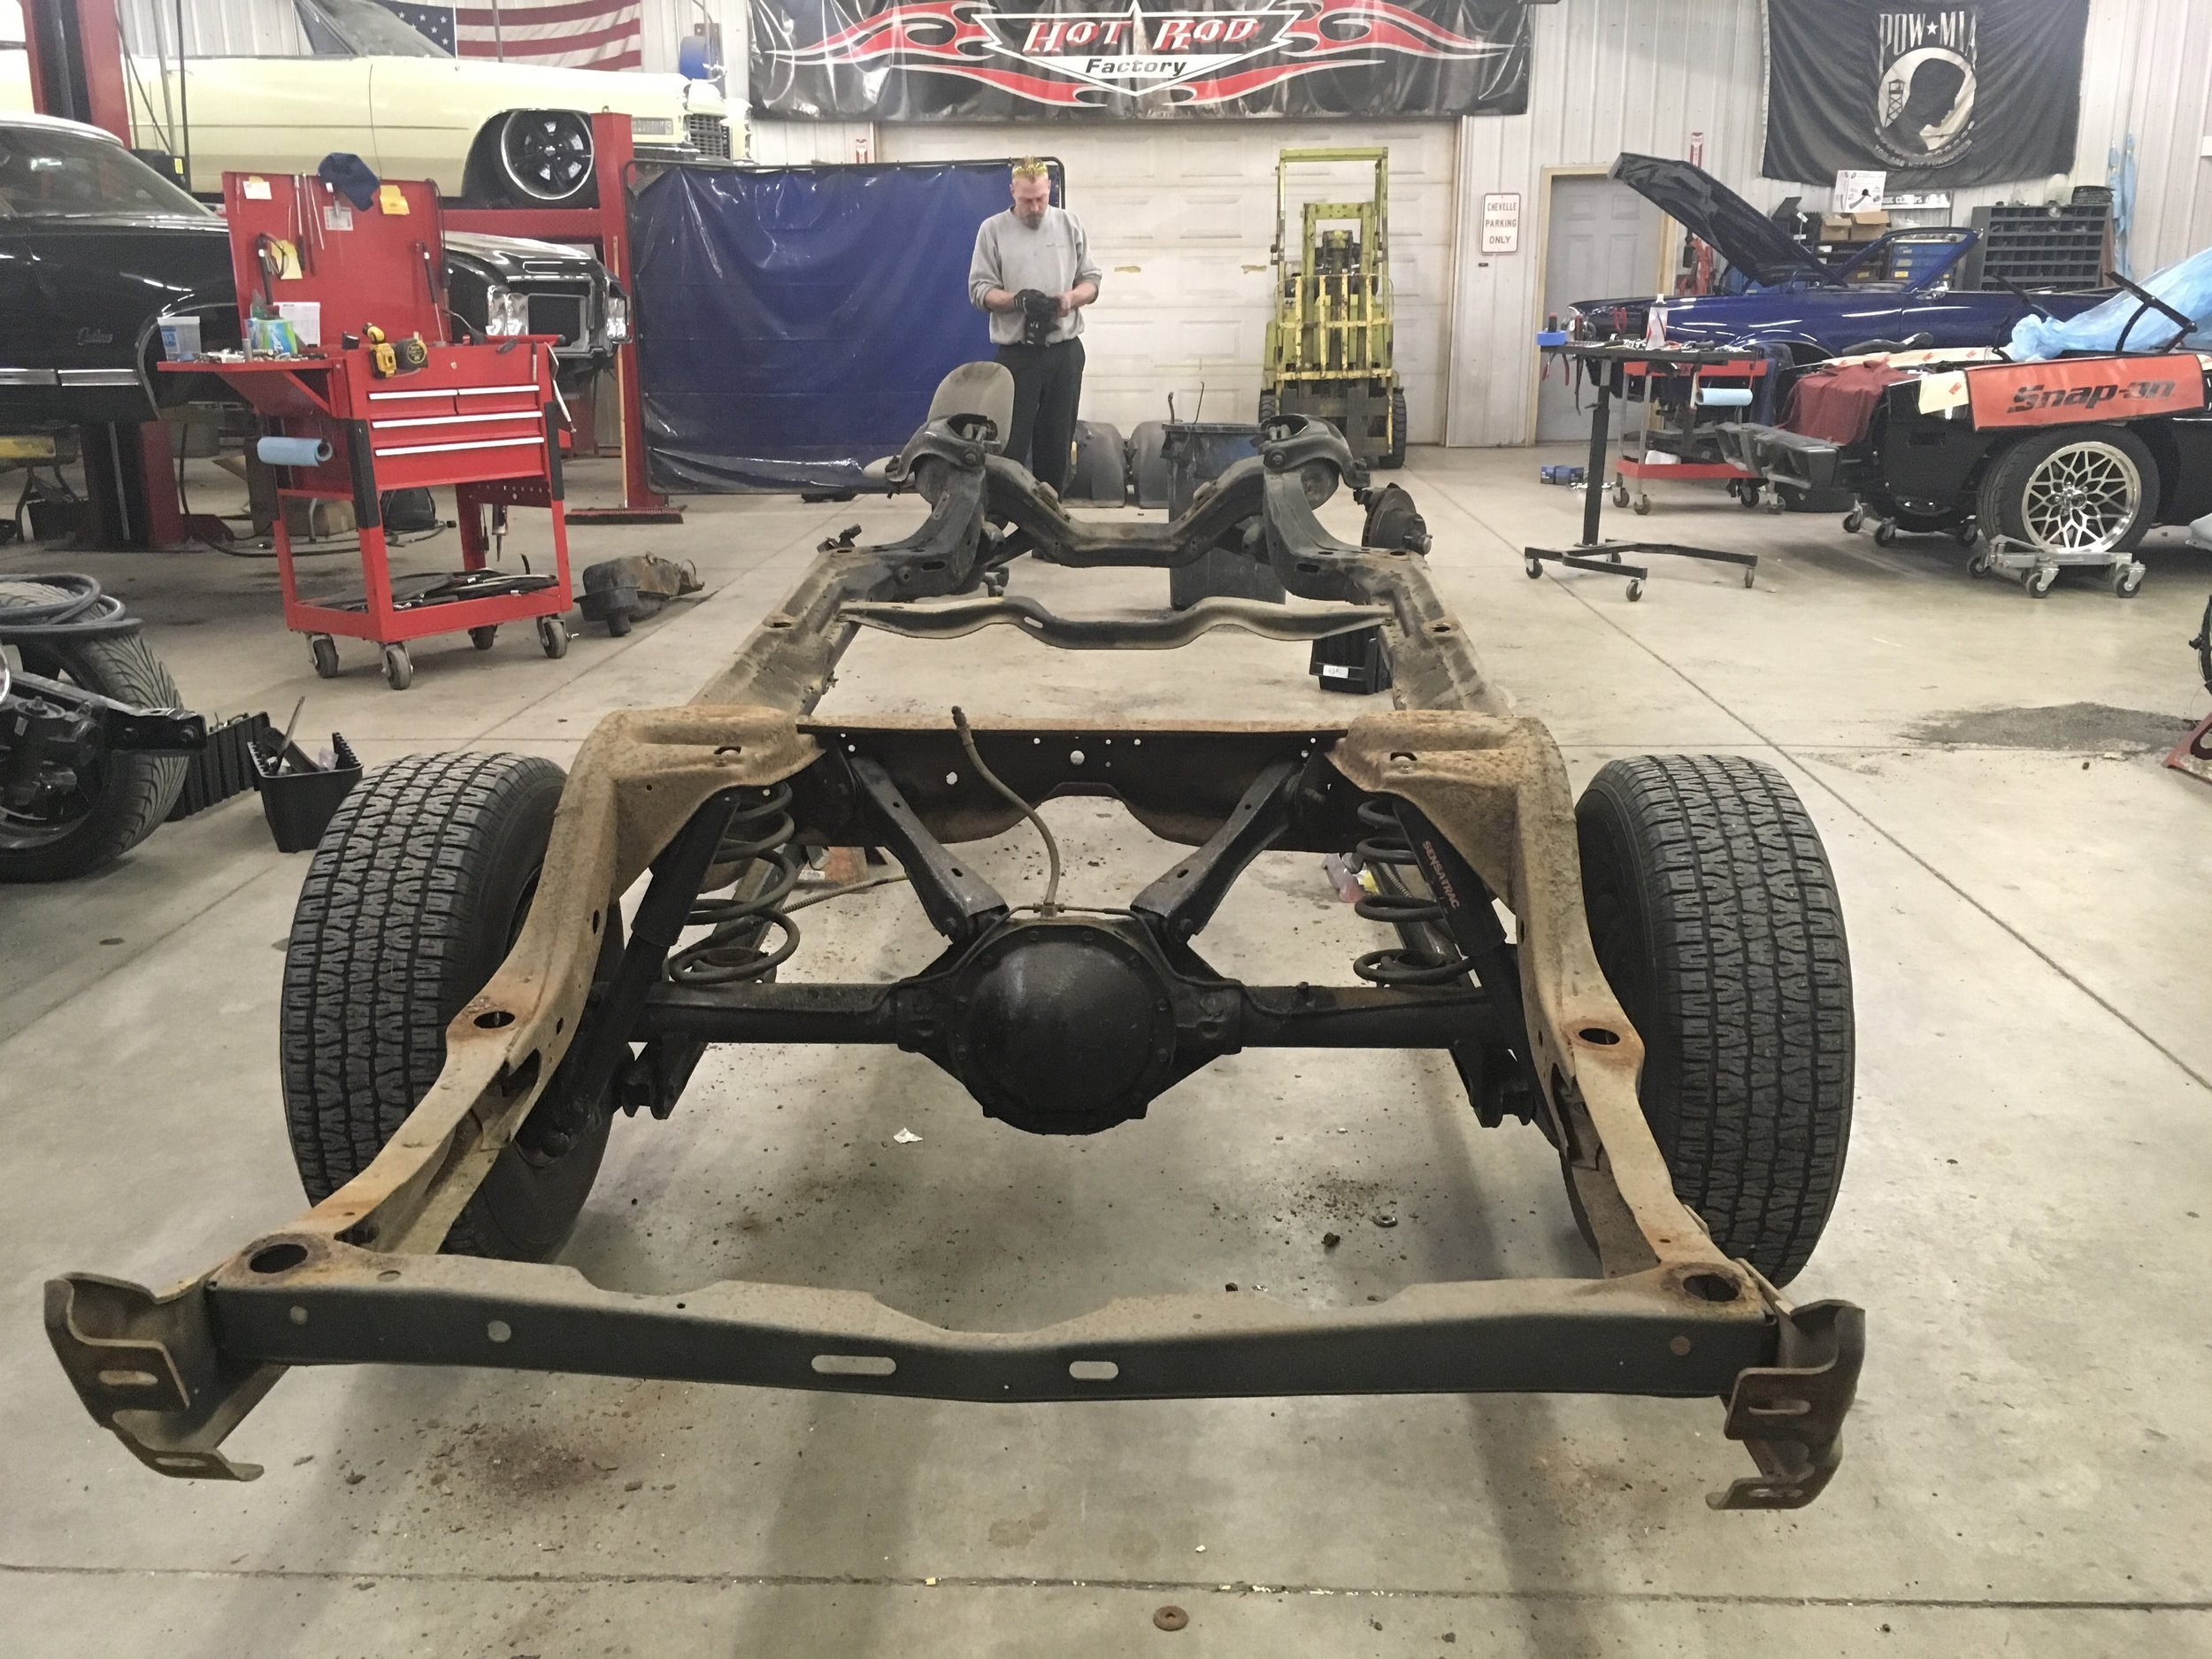 Frame removed from car, 1970 Oldsmobile Cutlass.